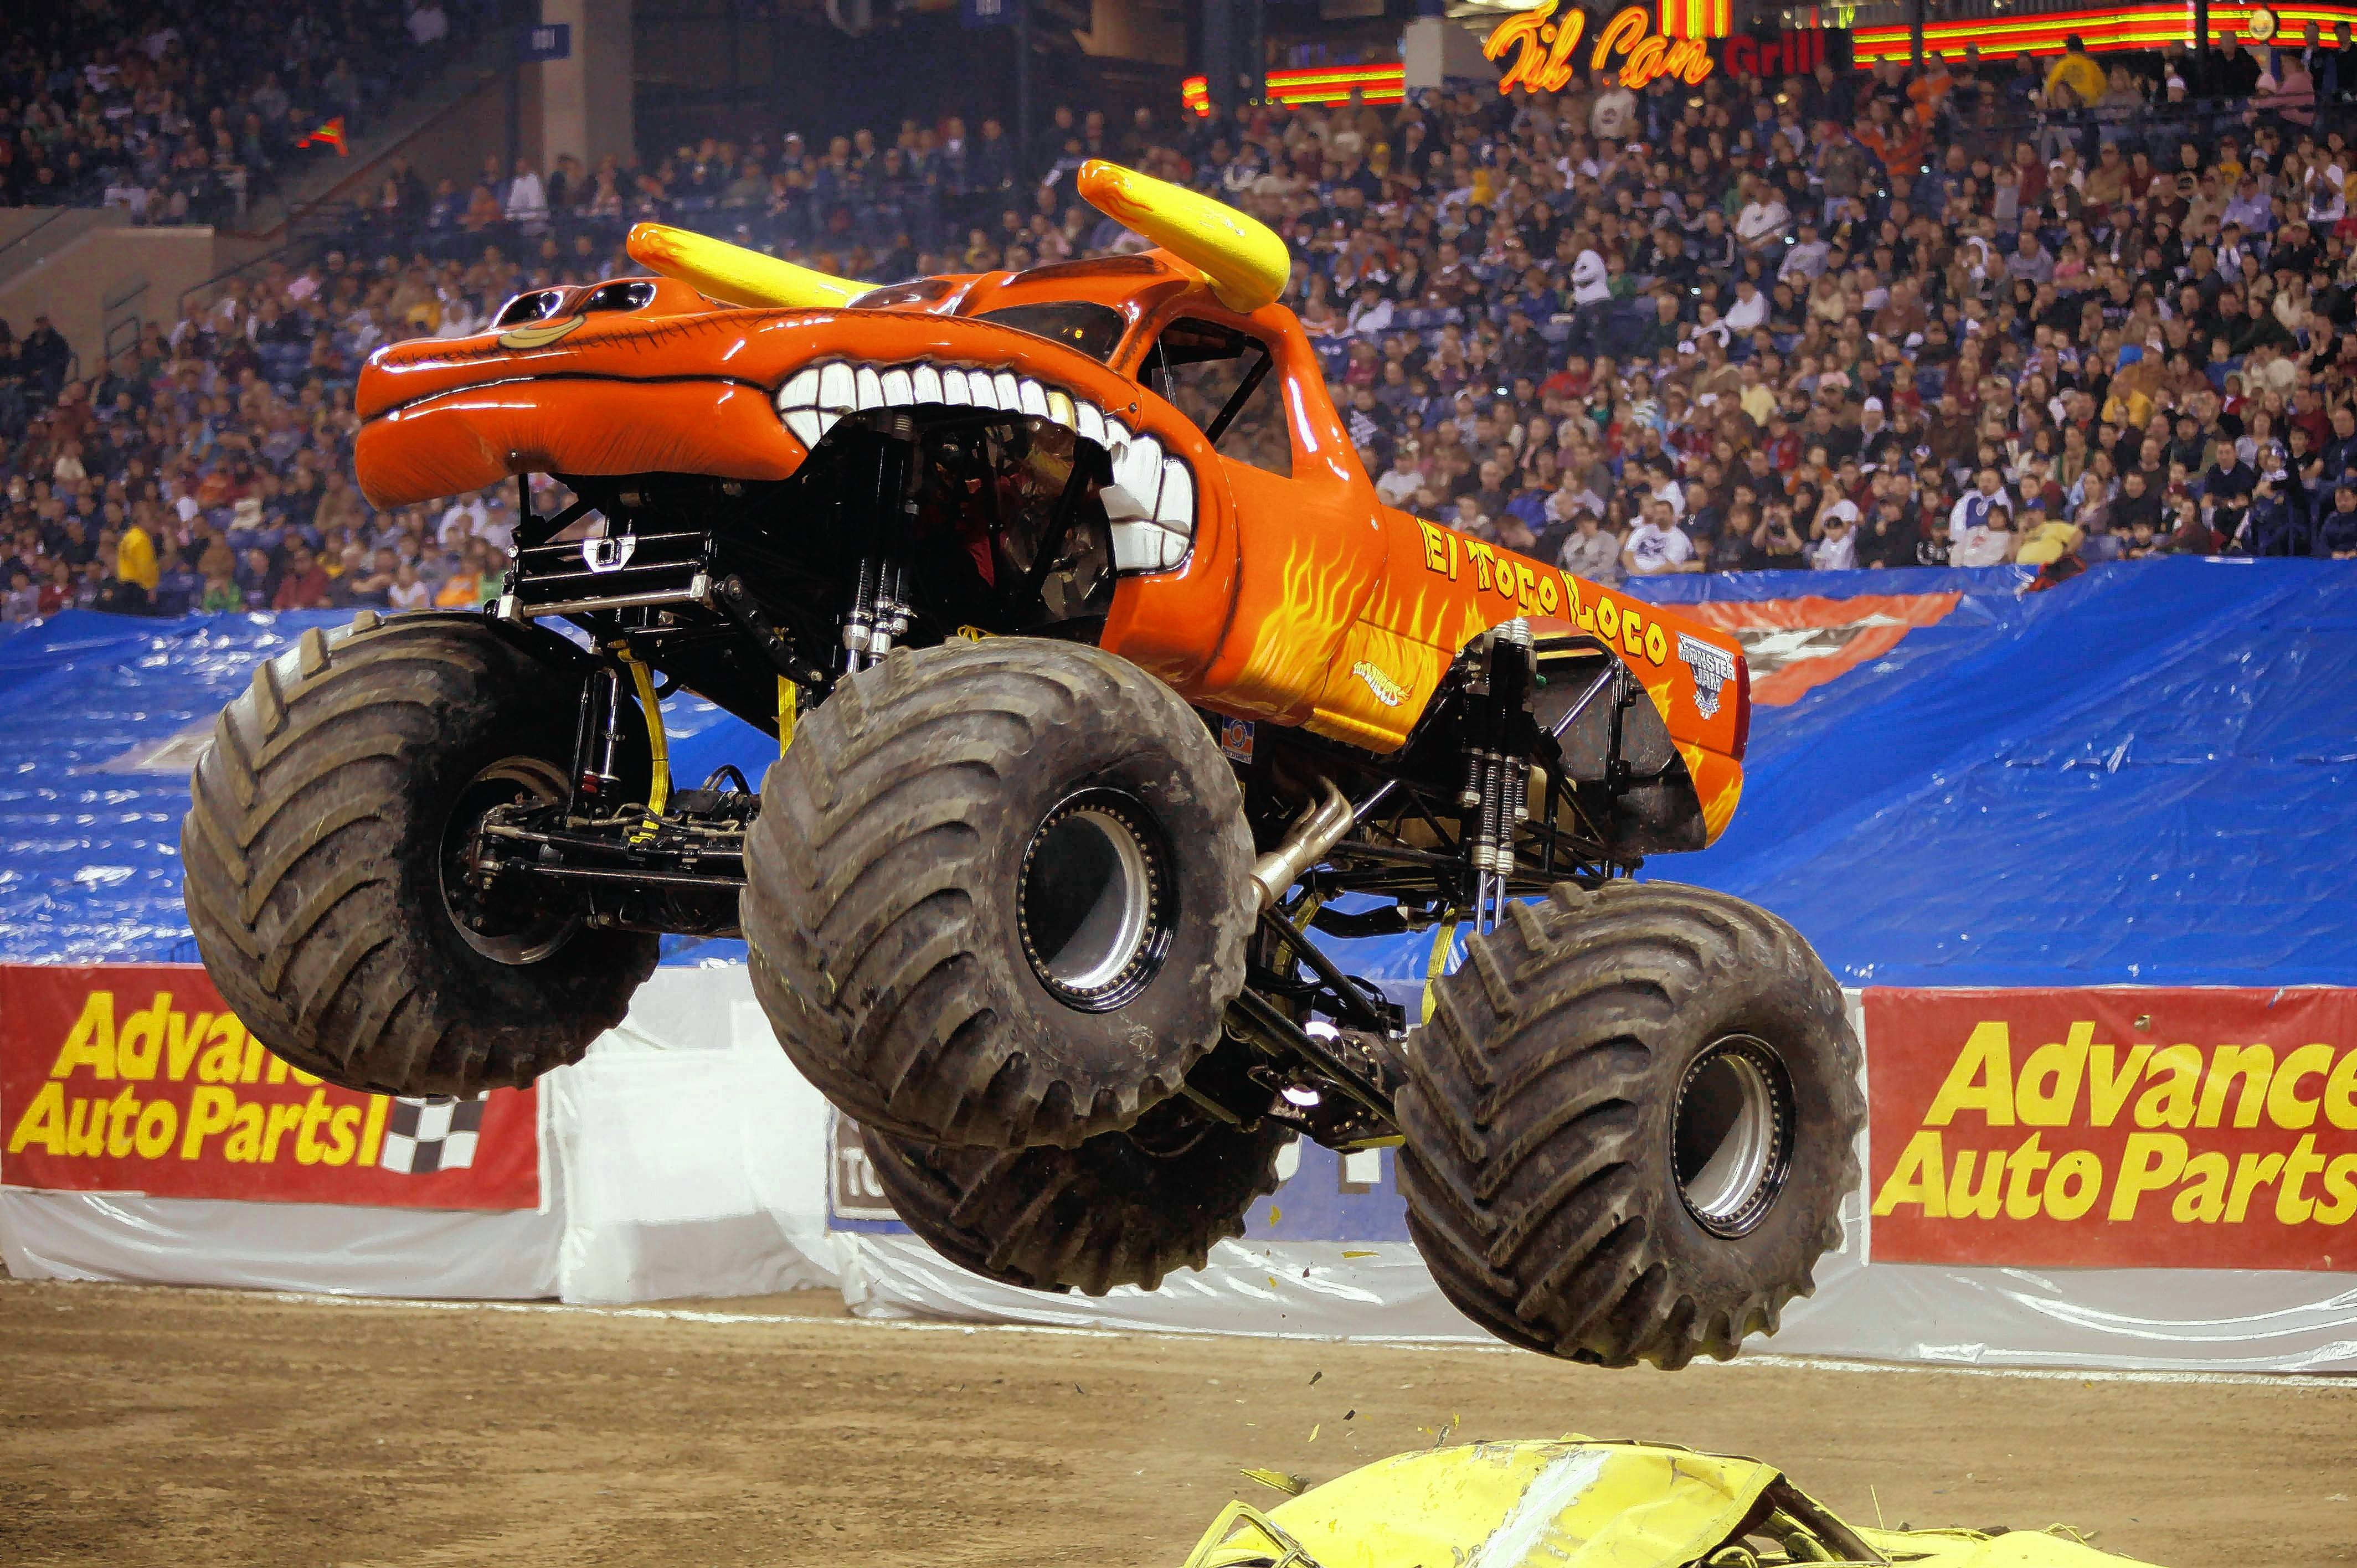 Monster Jam trucks will roll into Rosemont's Allstate Arena from March 2-5 with the Monster Jam Triple Threat Series.